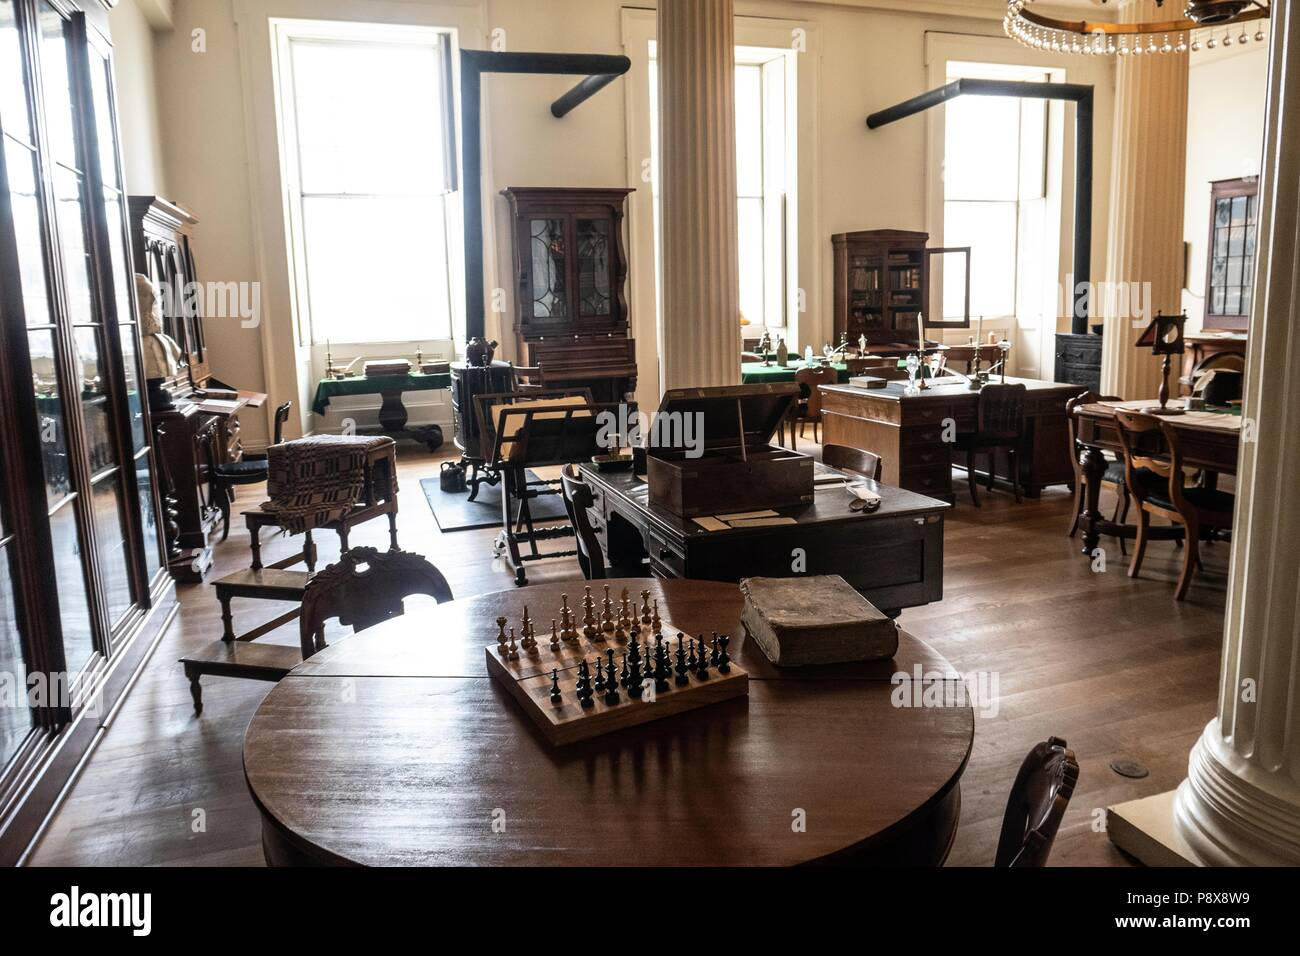 The restored interior of the old Illinois state capital building in Springfield Illinois - Stock Image